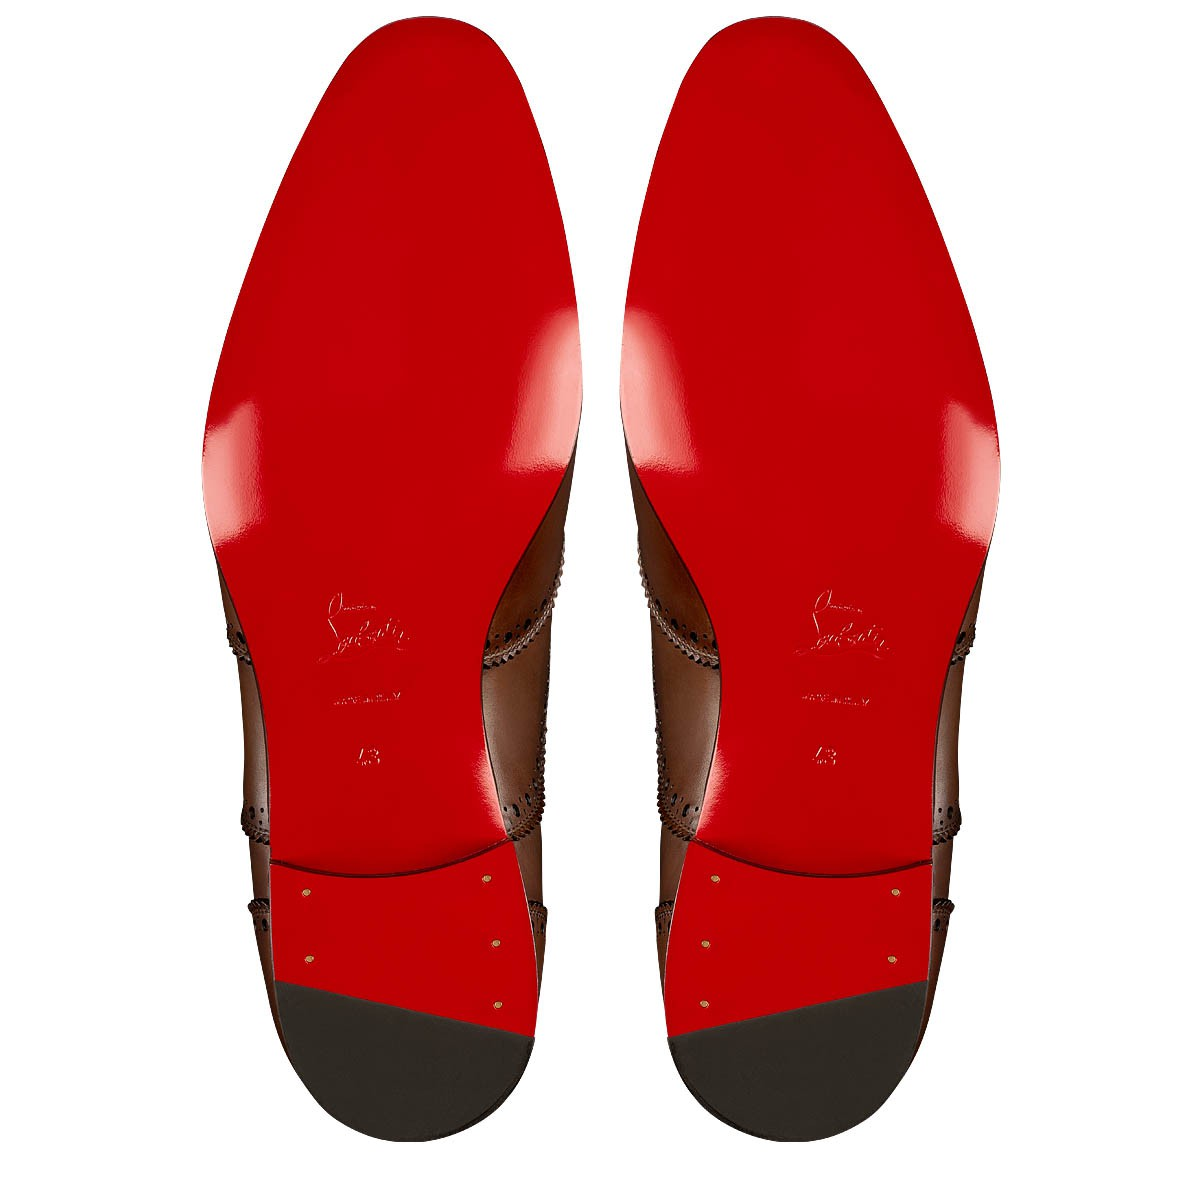 Souliers - Platerboy - Christian Louboutin